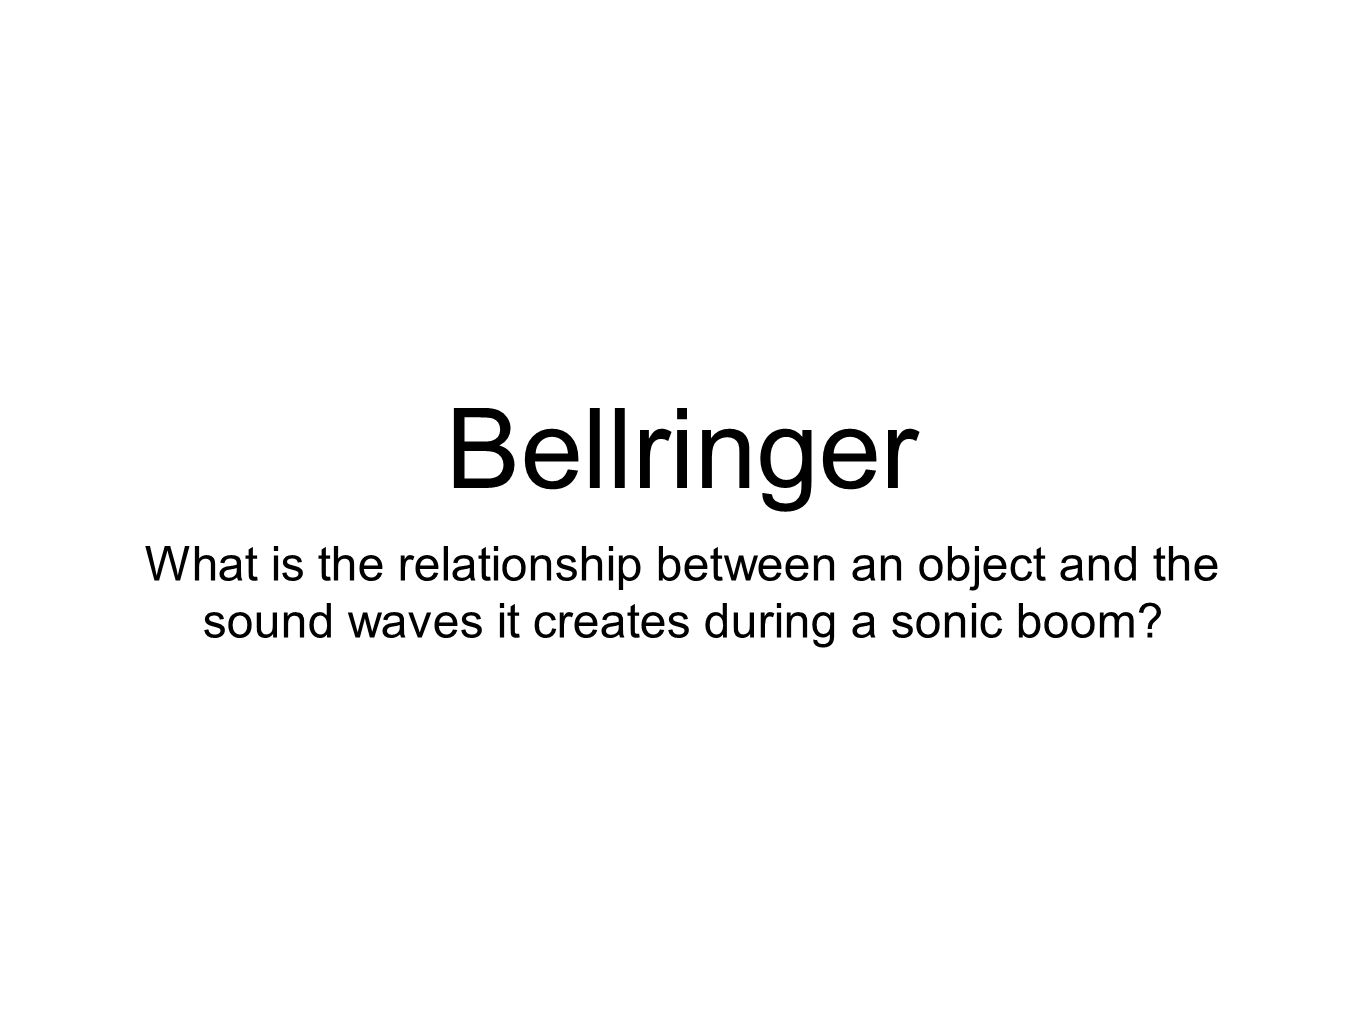 Bellringer What is the relationship between an object and the sound waves it creates during a sonic boom